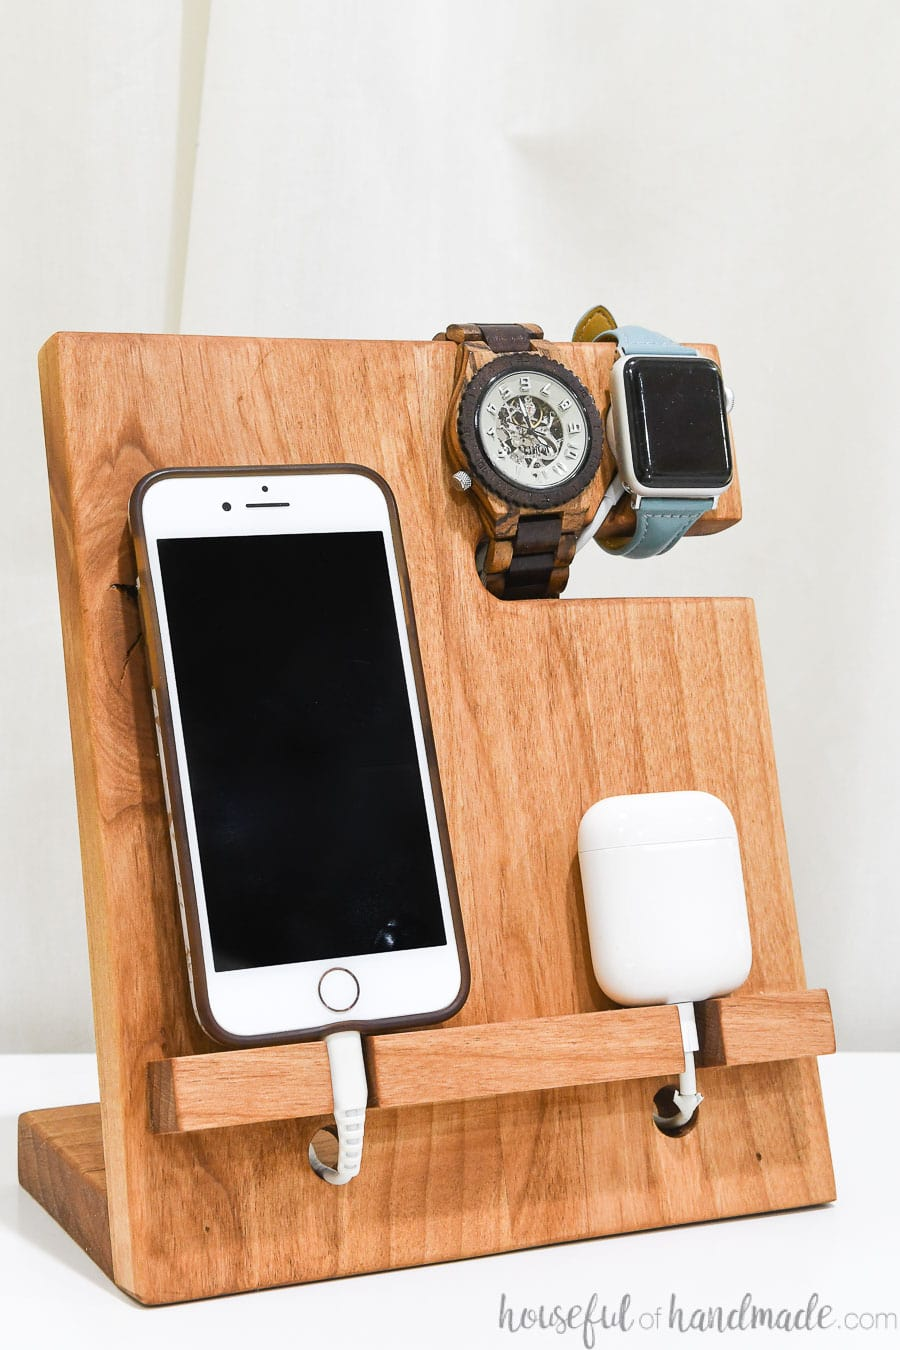 Close up of the nightstand valet docking station.